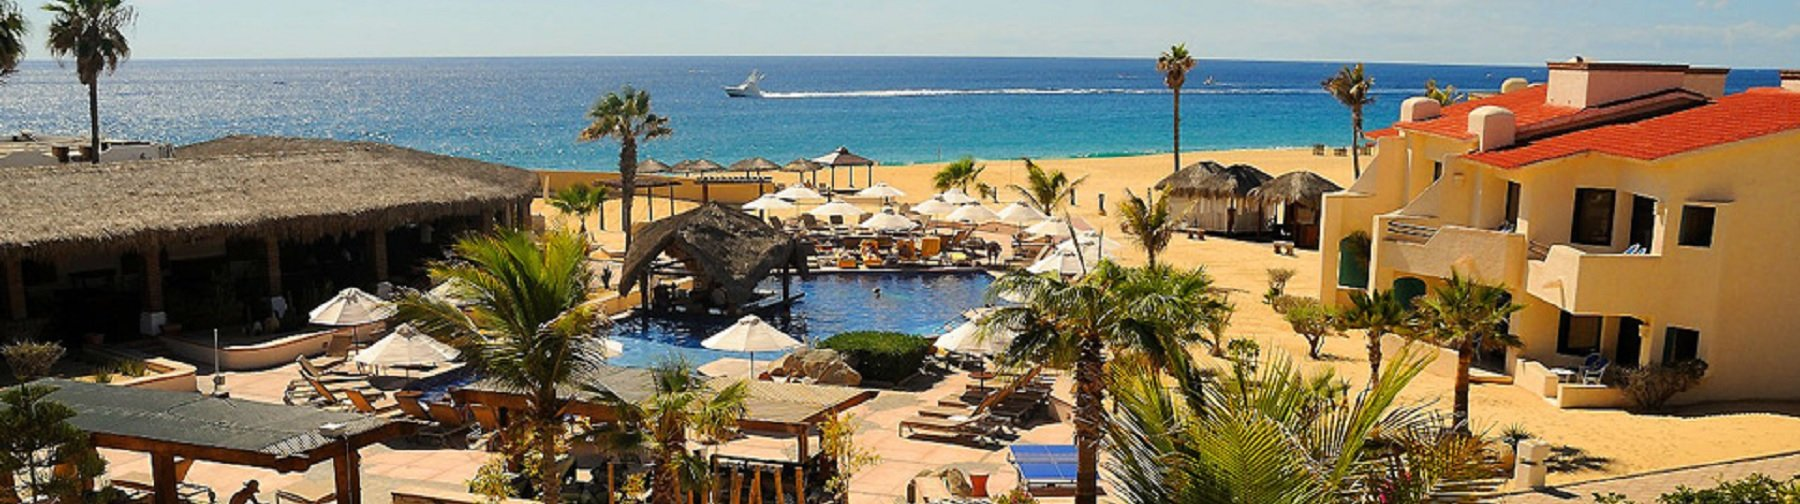 Cabo San Lucas Spring Break 2019 Student Deal – Solmar Resort